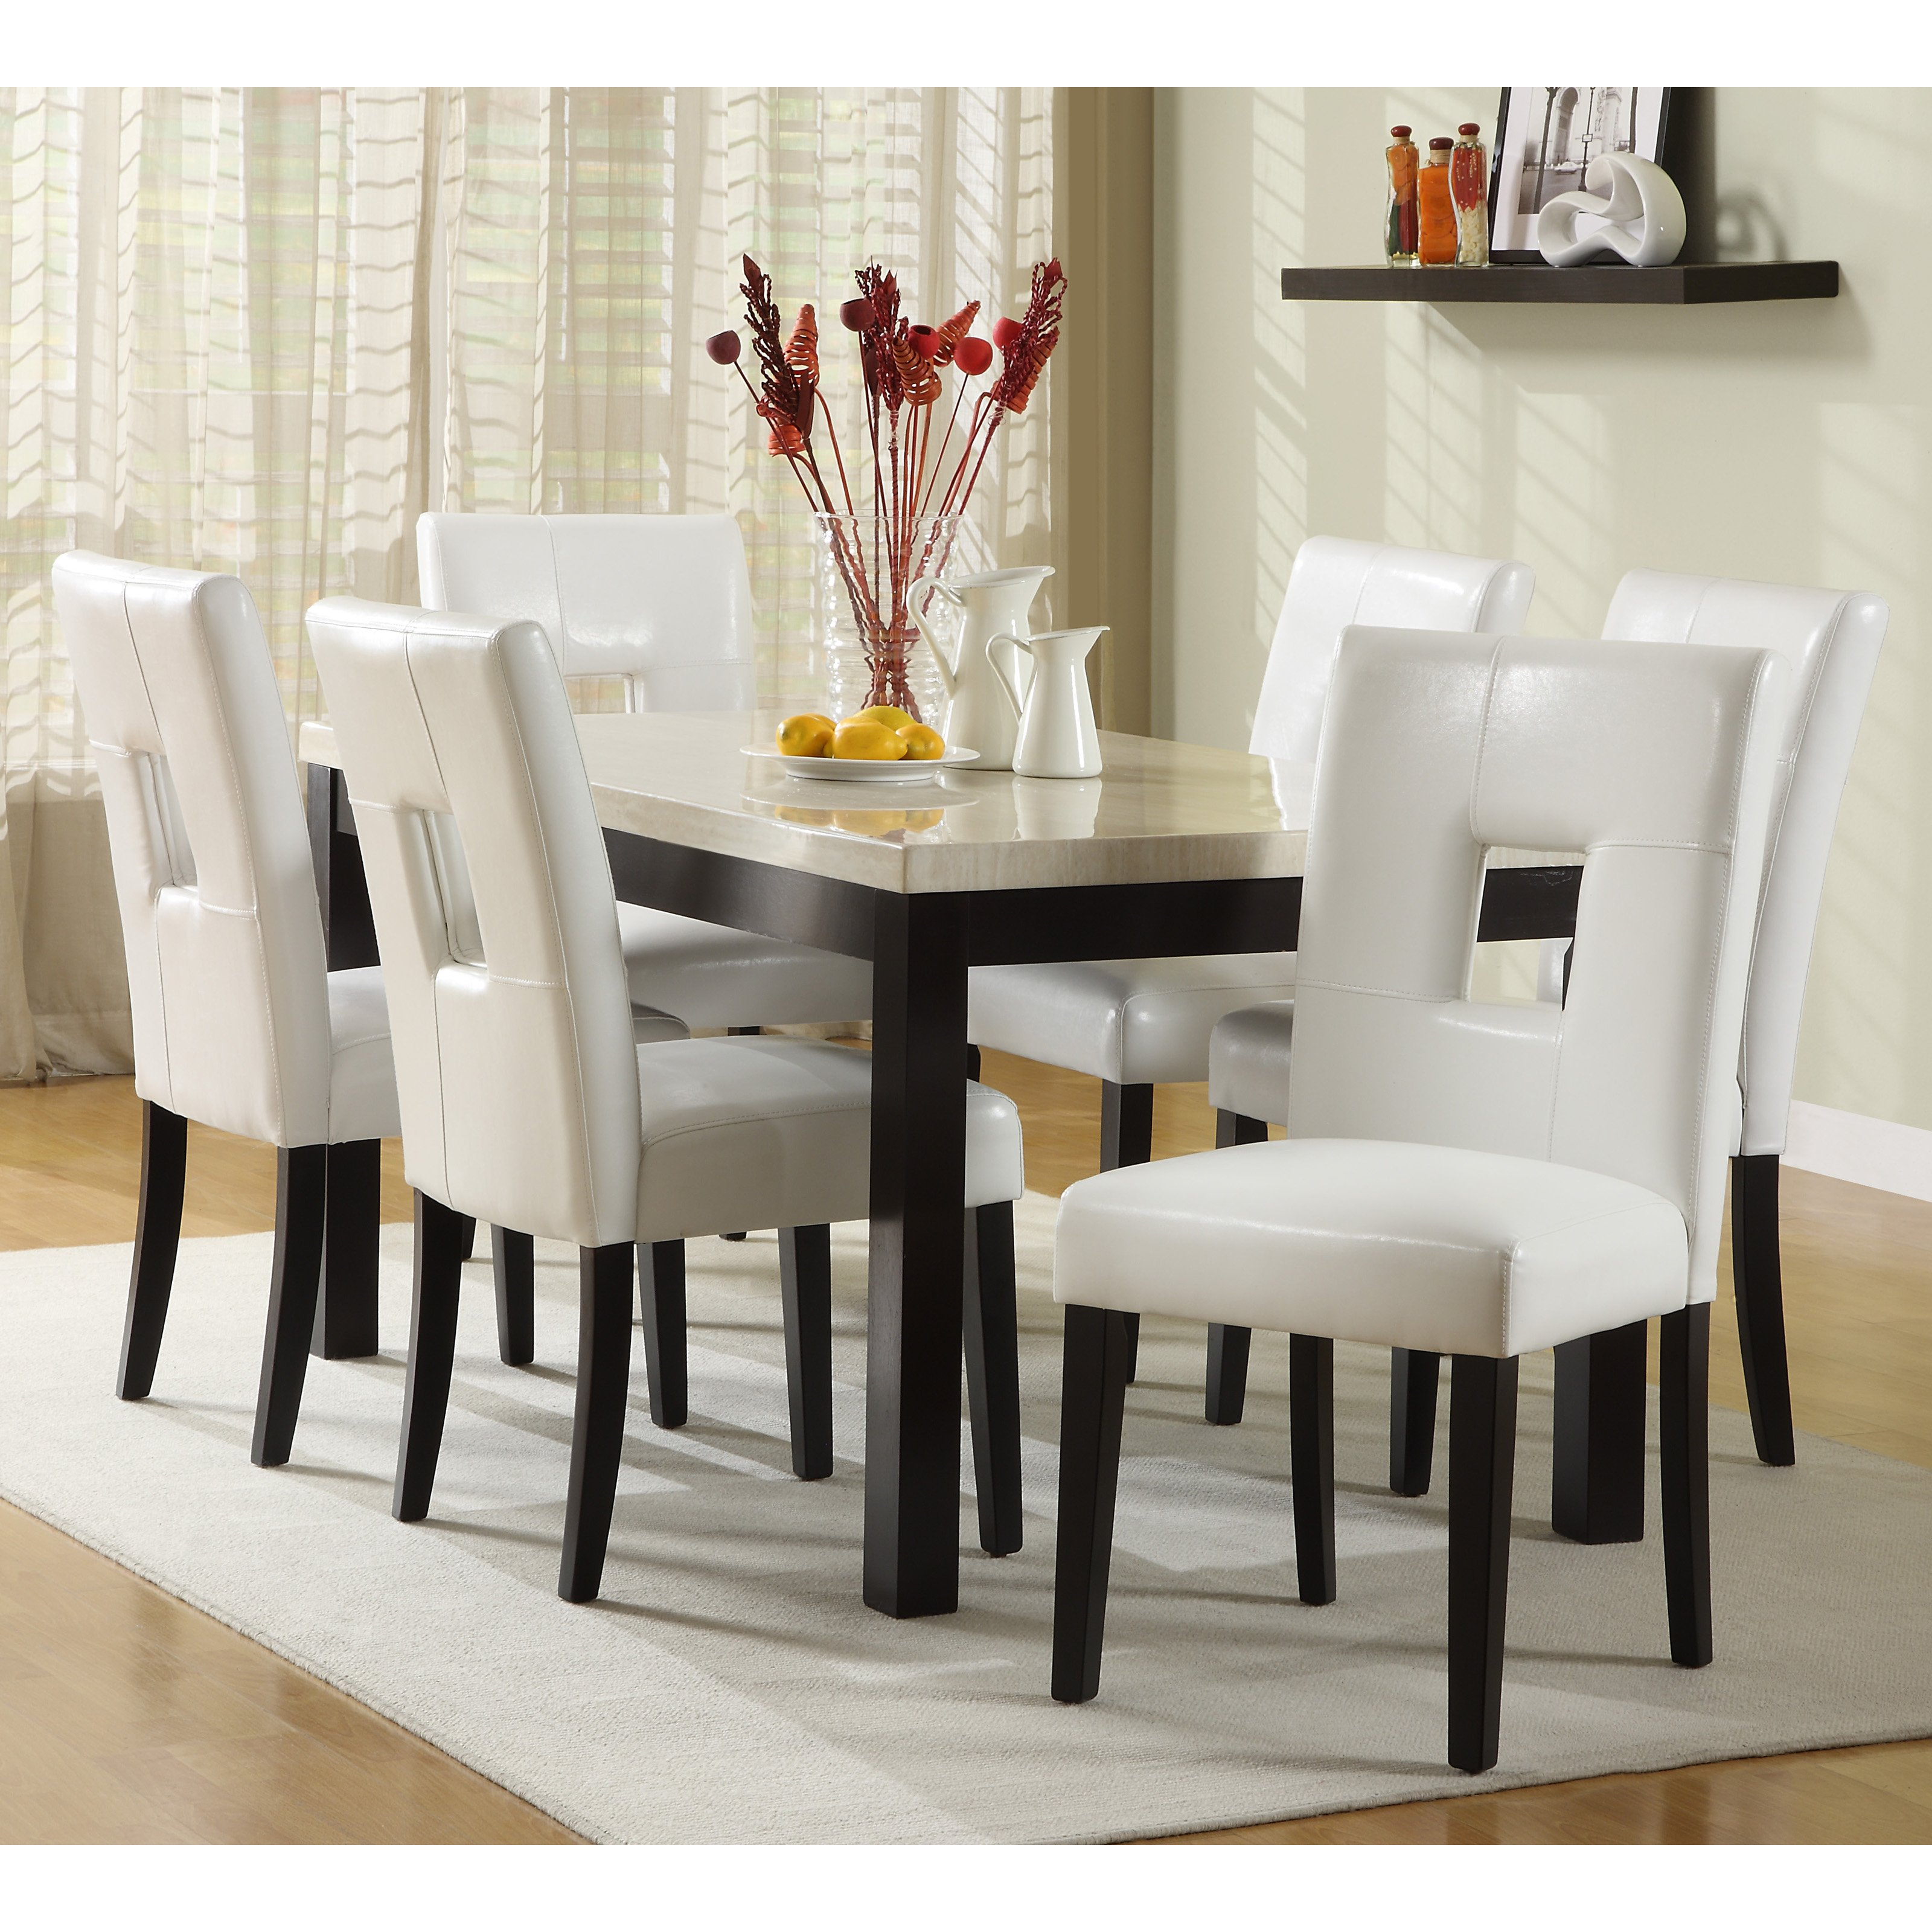 Marble Kitchen Table And Six White Chairs Carpet Curtain